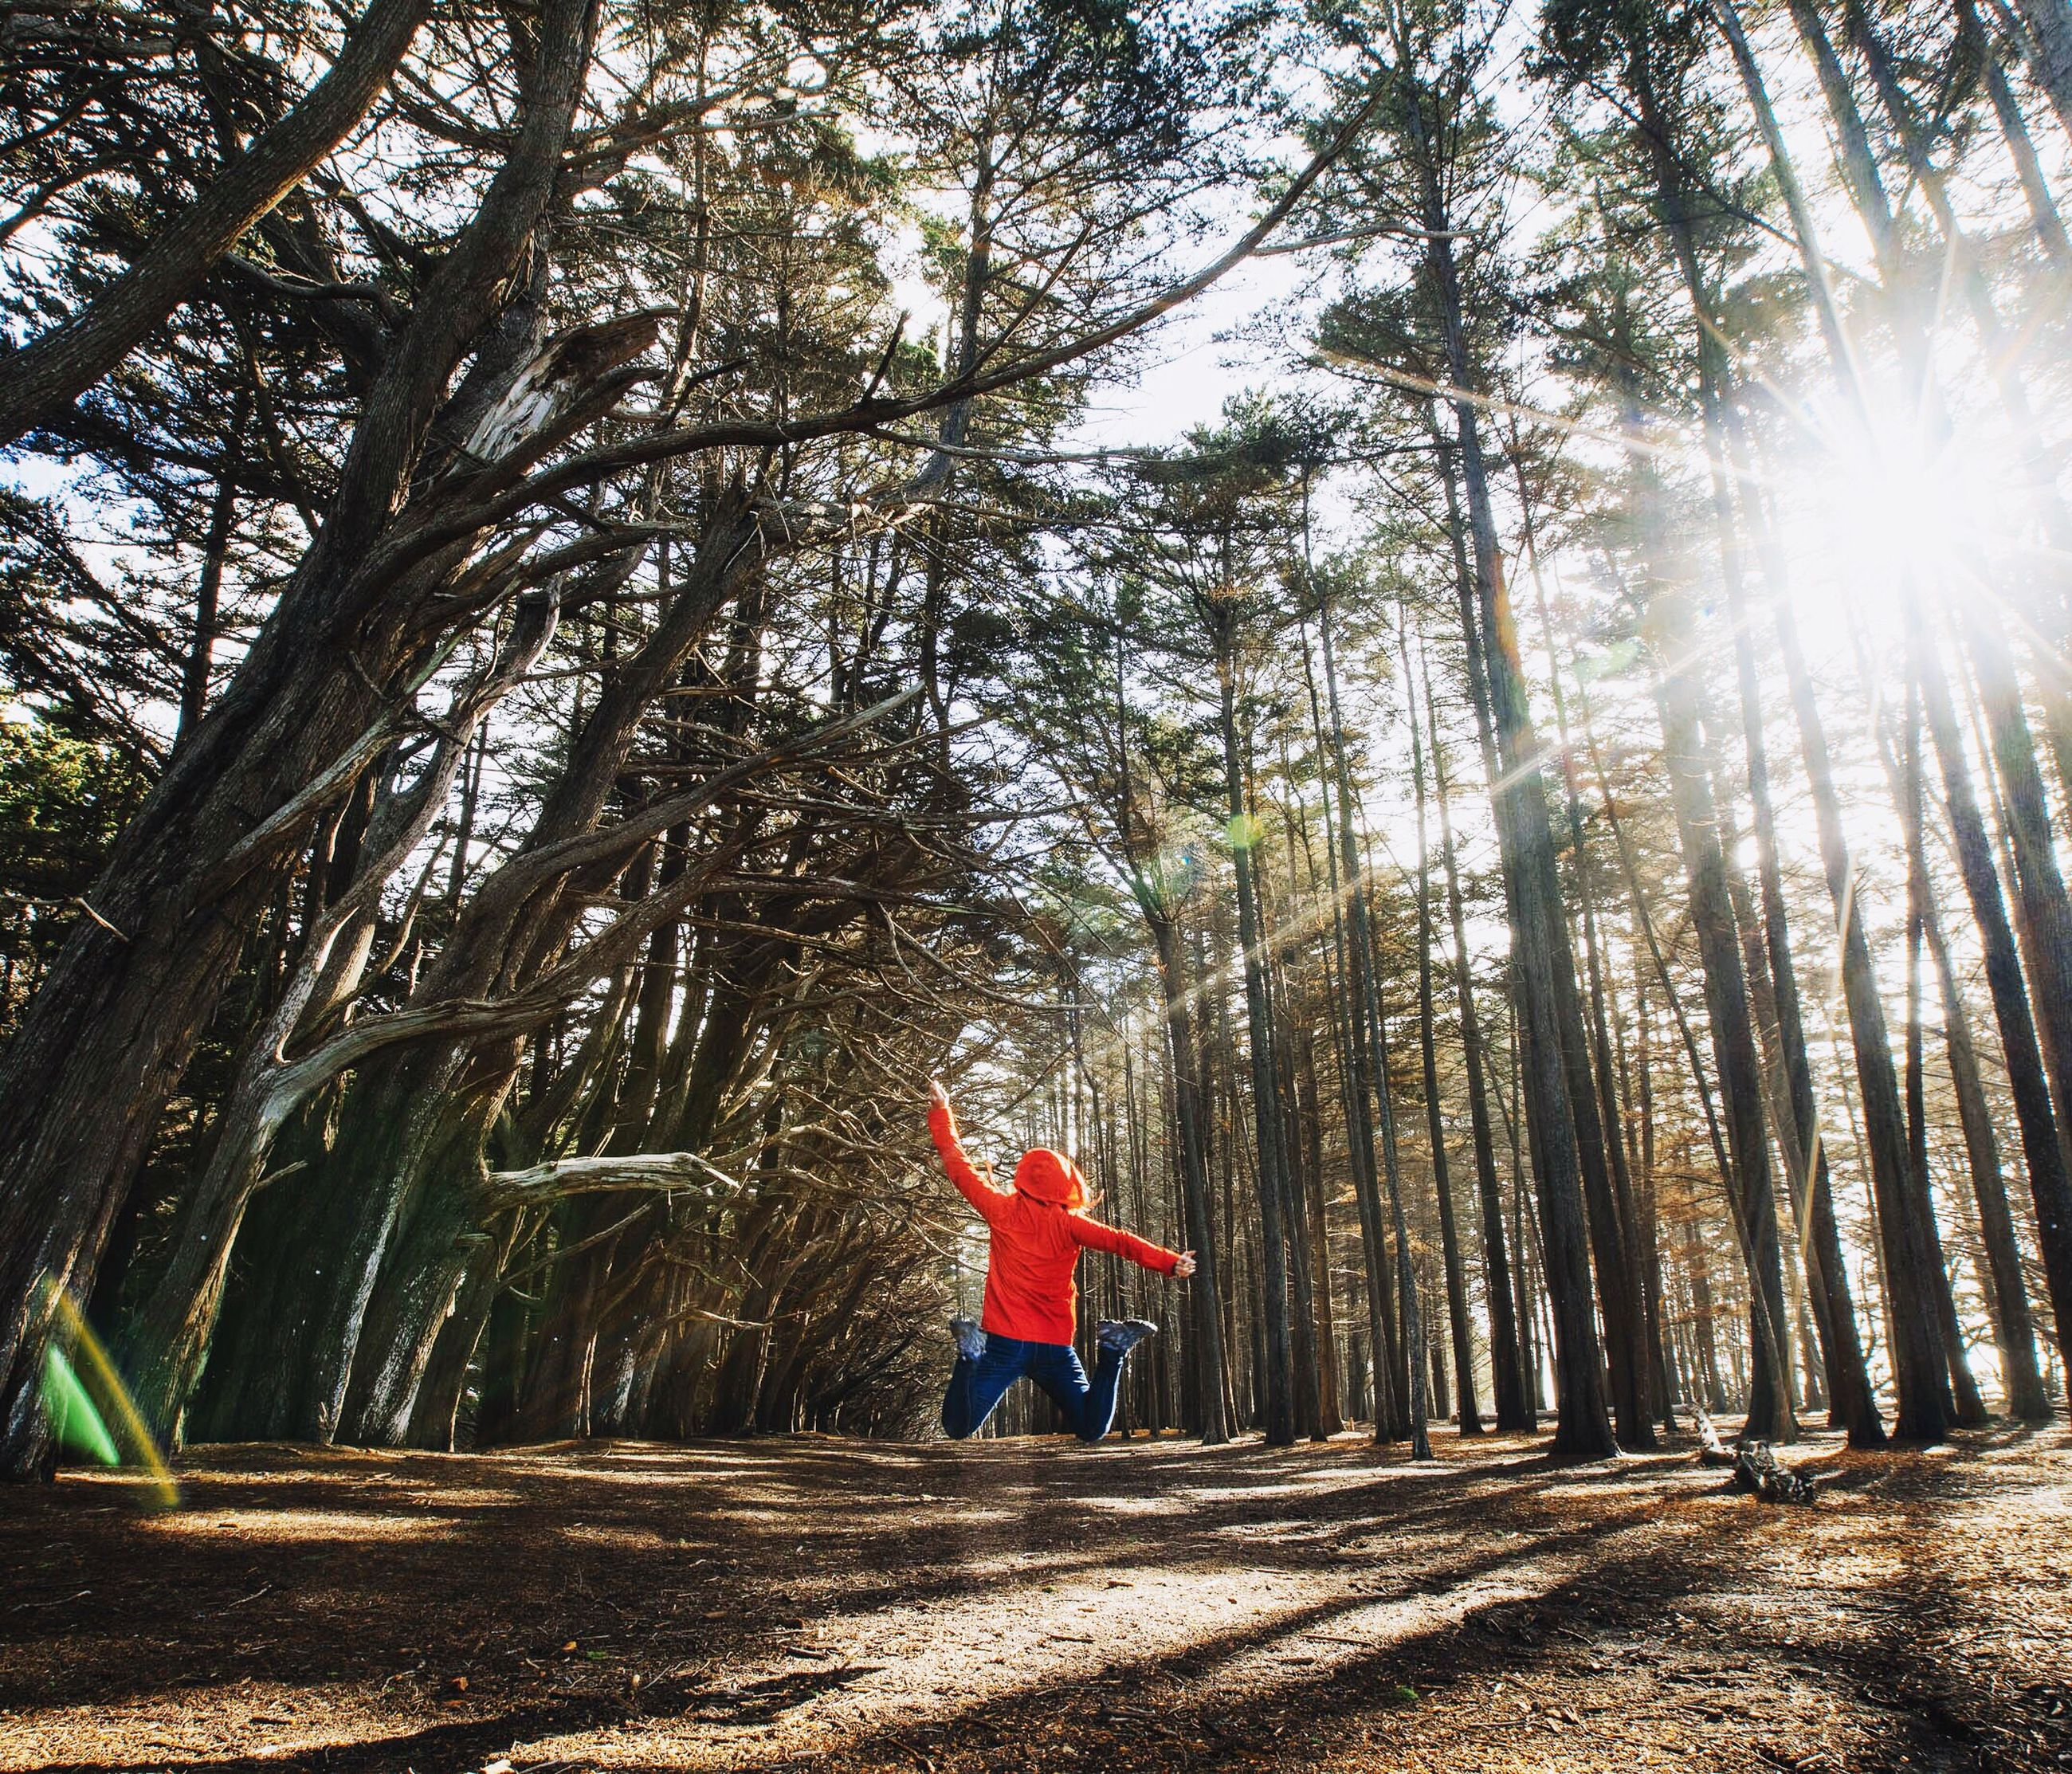 tree, lifestyles, full length, leisure activity, sunlight, walking, sunbeam, rear view, tree trunk, the way forward, casual clothing, growth, person, forest, sun, men, nature, lens flare